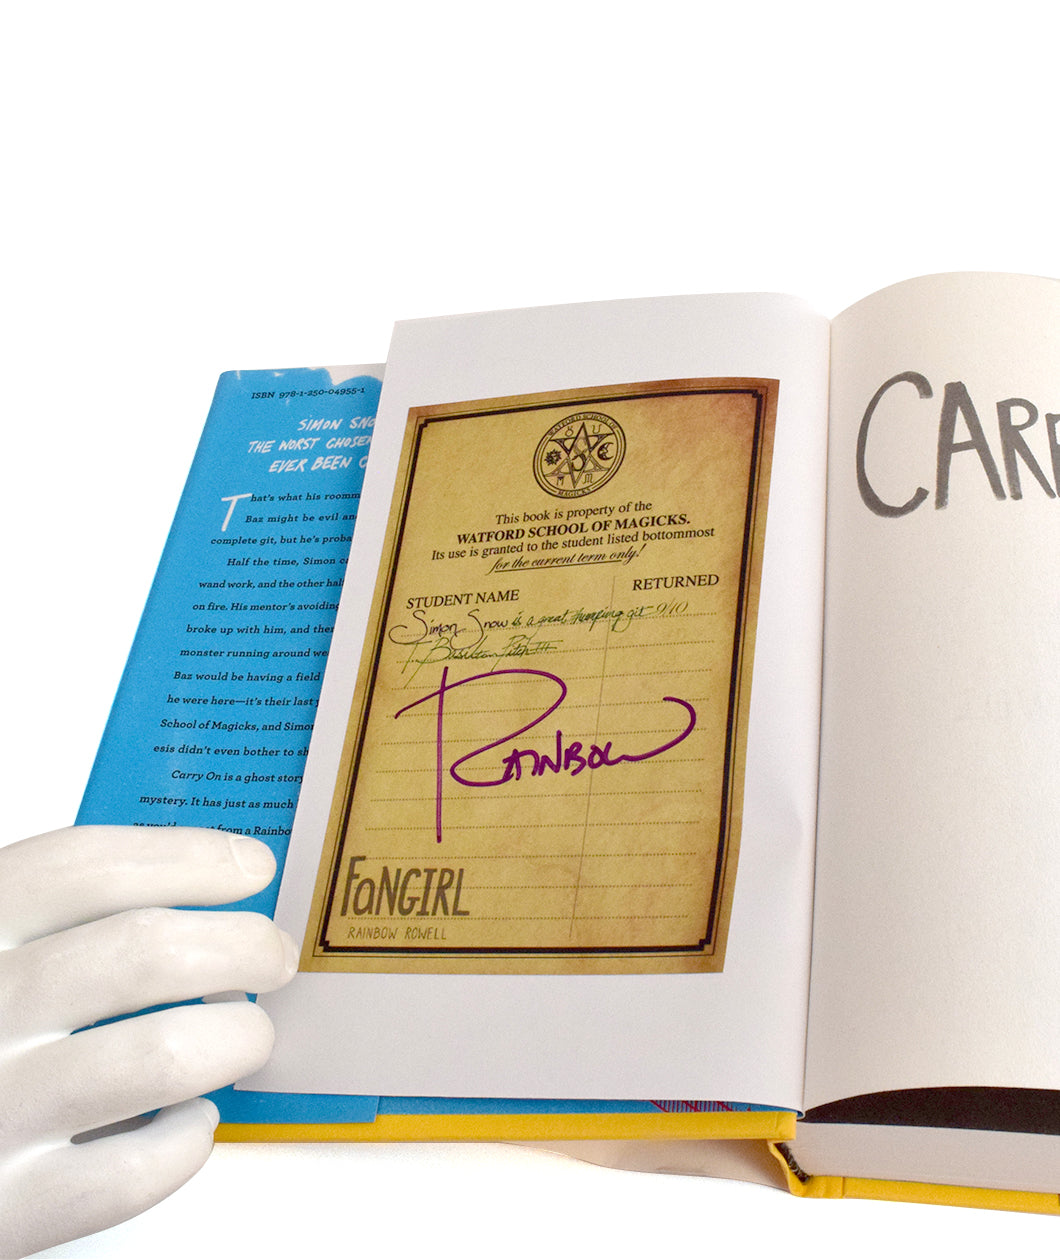 SIGNED Carry On book + Because They Match Shirt Bundle